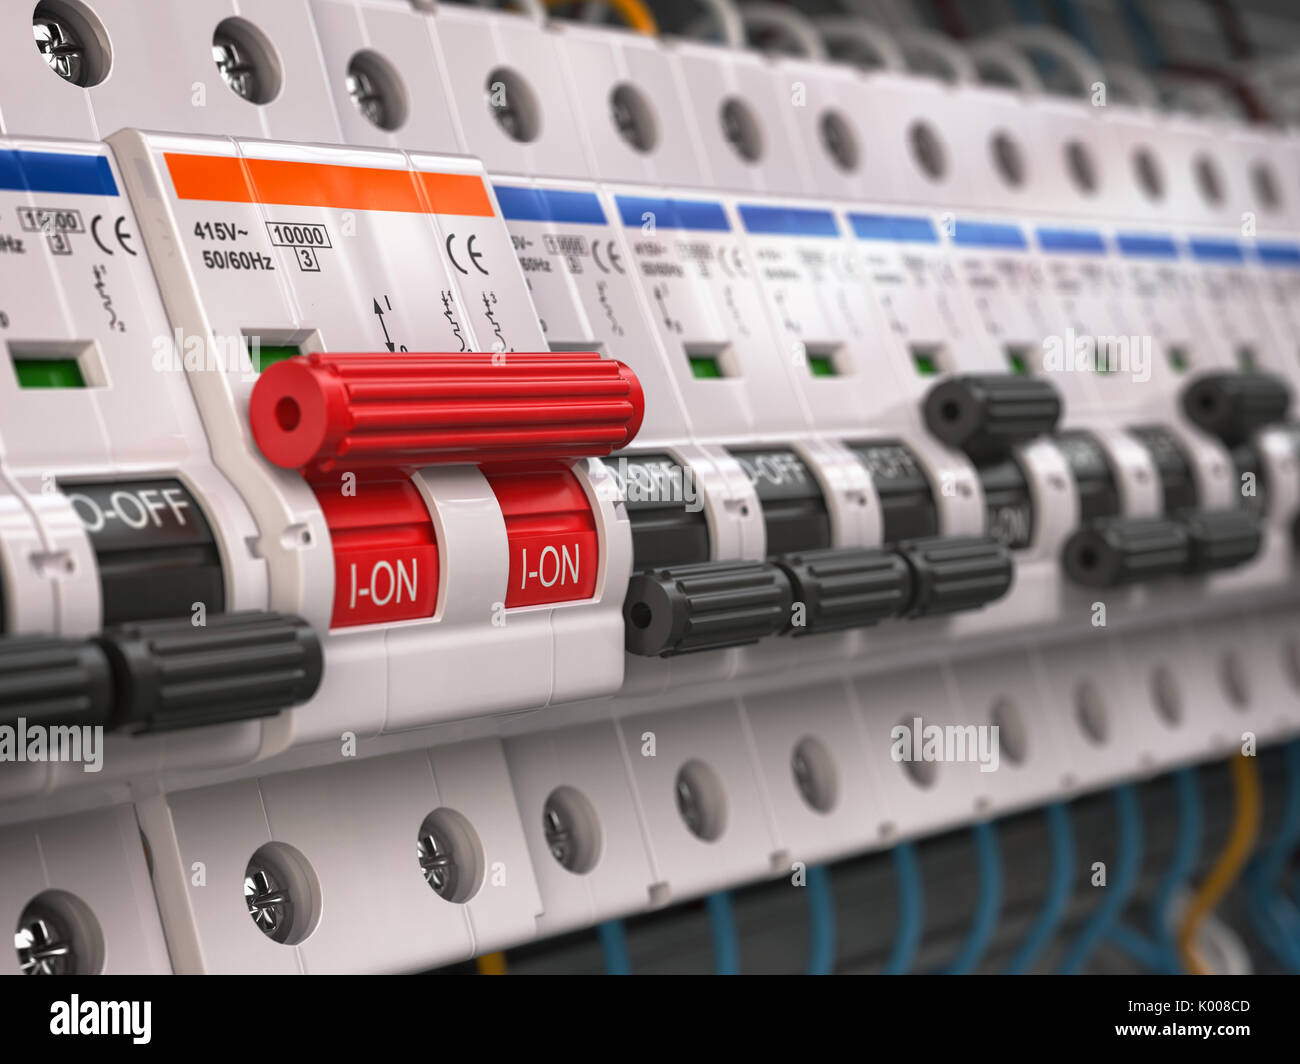 hight resolution of switches in fusebox many black circuit brakers in a row in position off and one